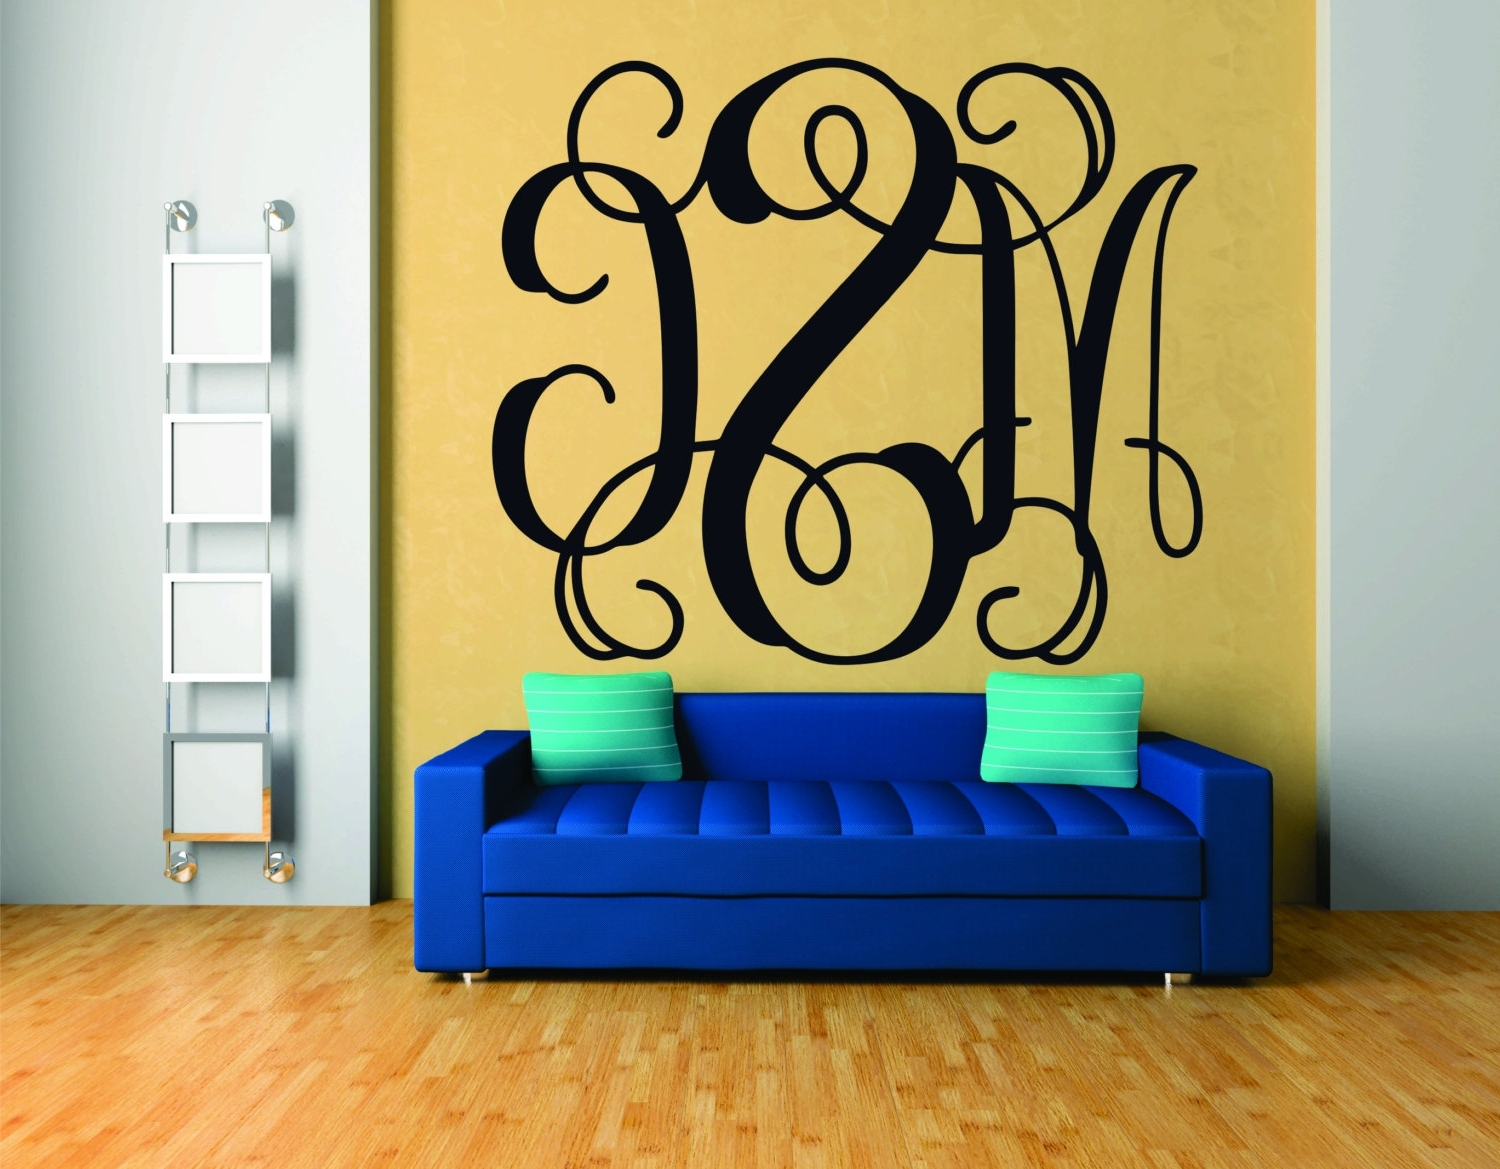 Unusual Stickable Wall Art Pictures Inspiration - The Wall Art ...